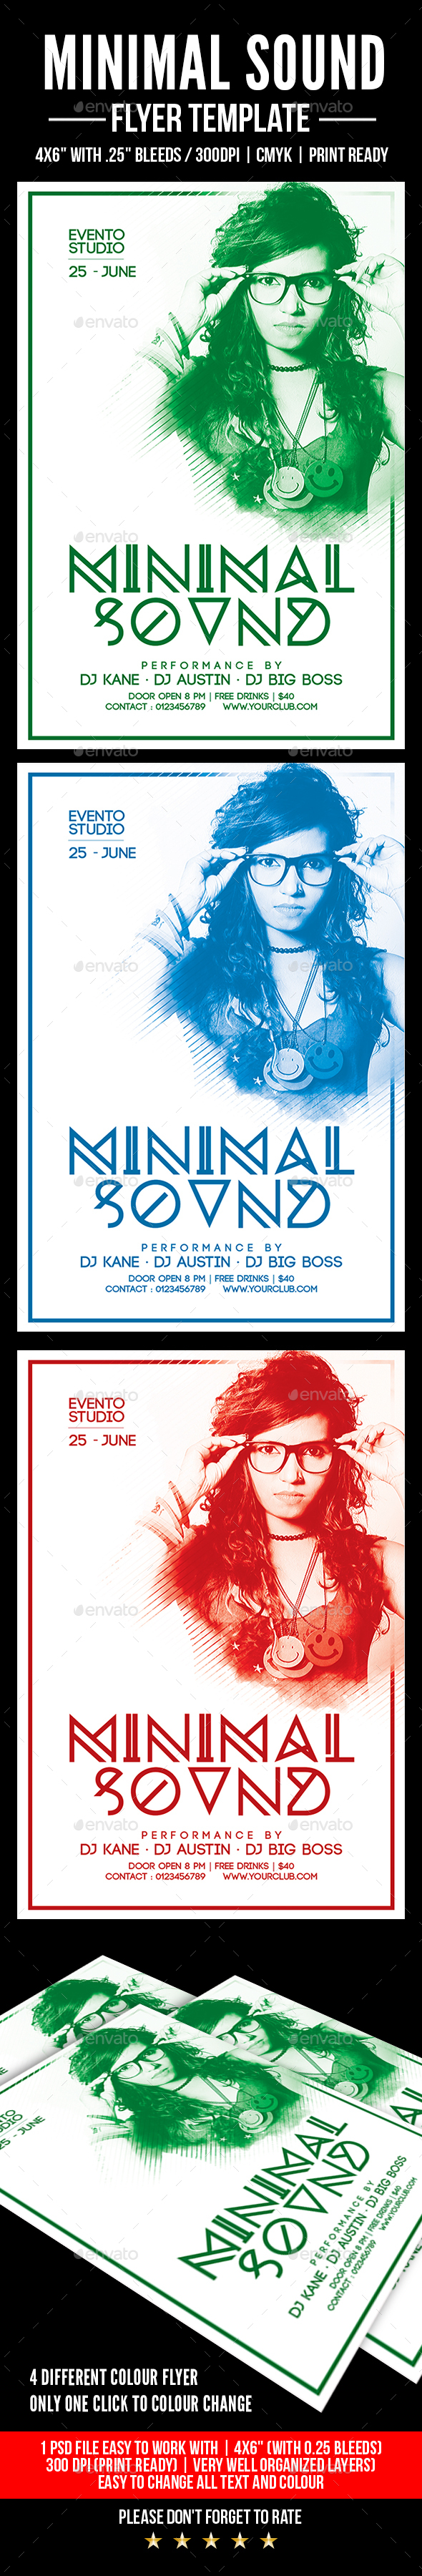 Minimal Sound Flyer - Events Flyers